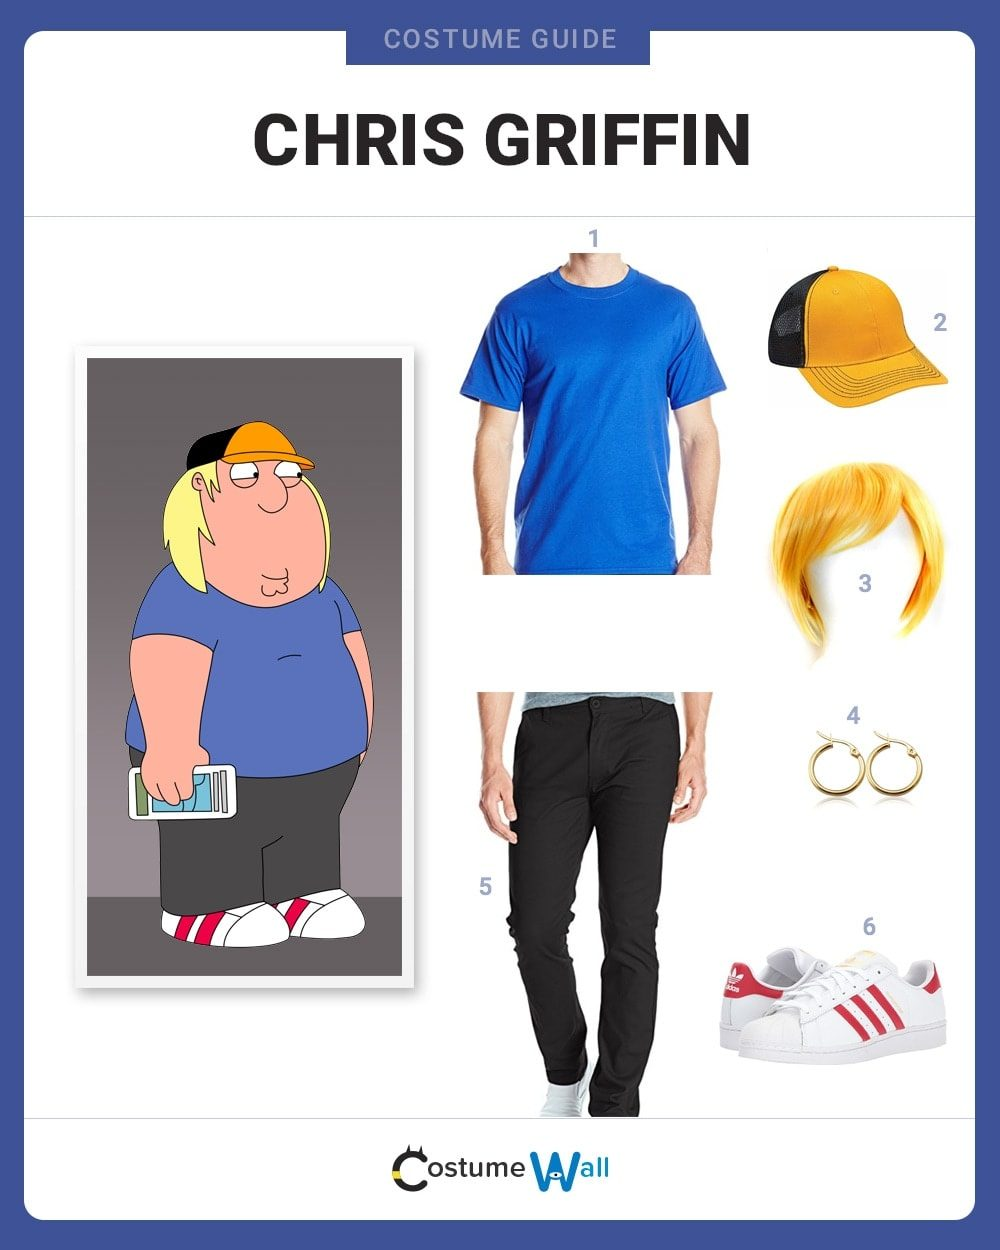 Chris Griffin Costume Guide